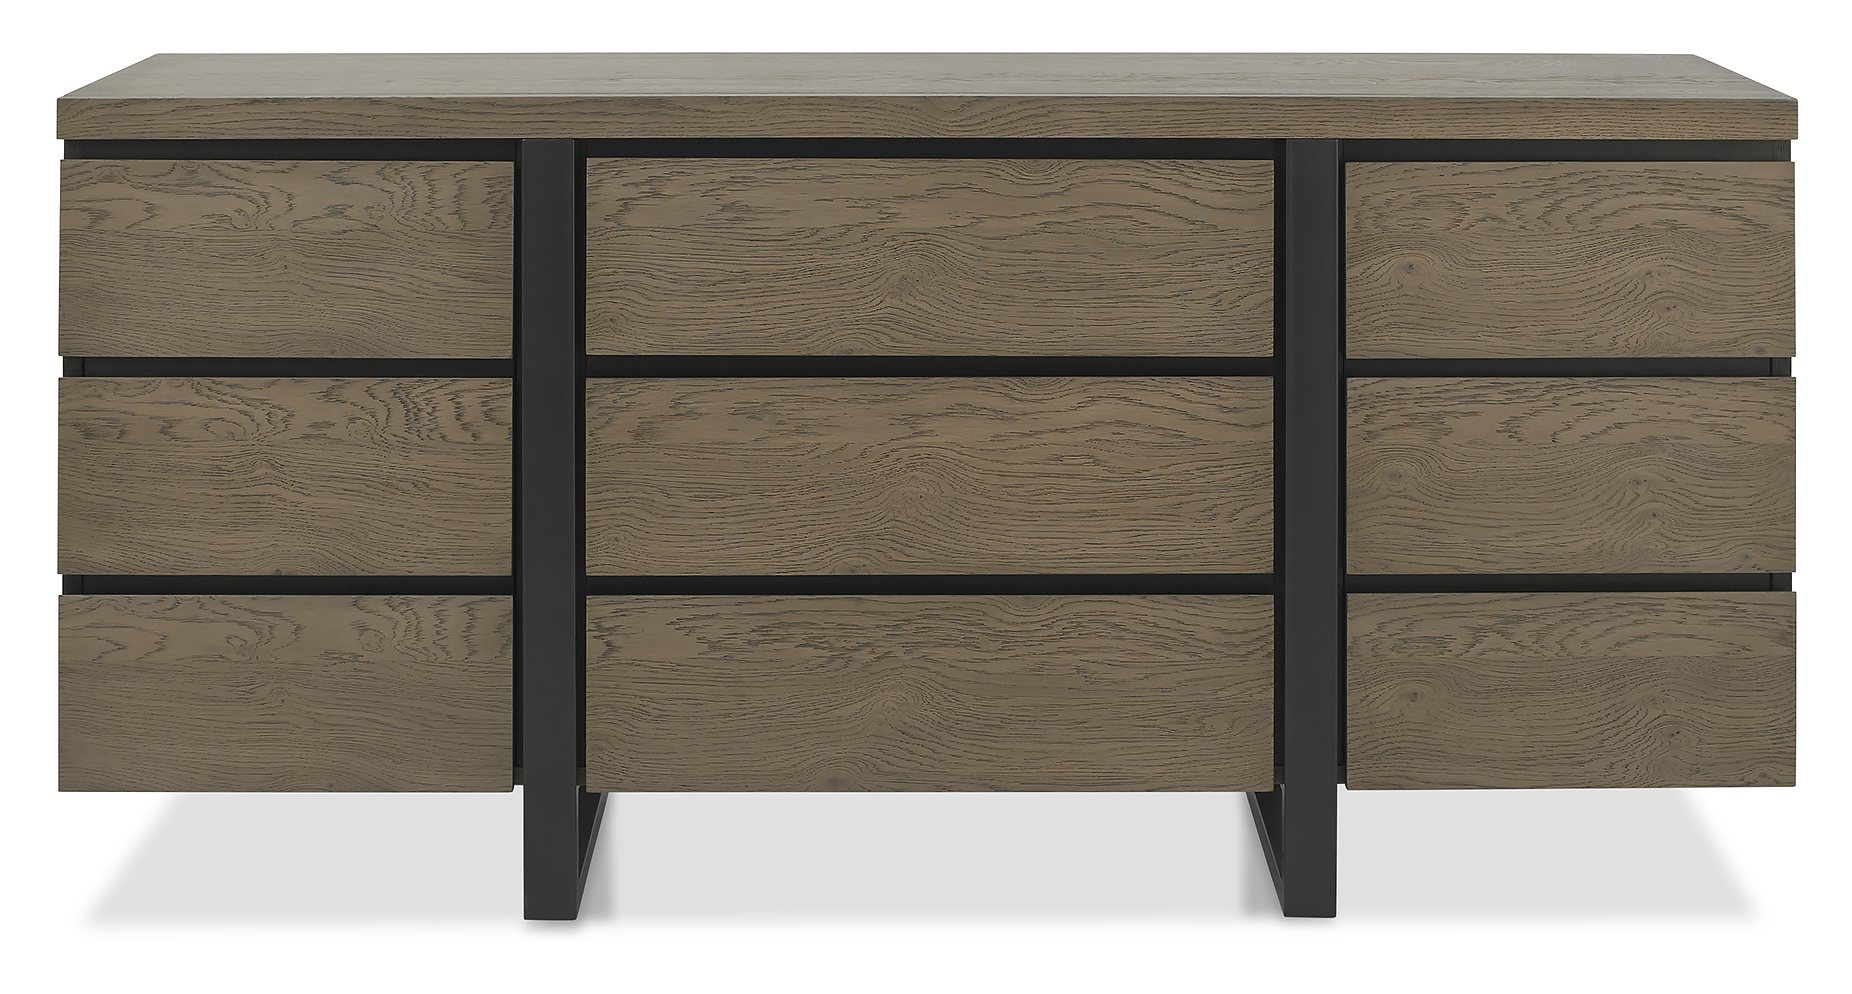 BRINDISI WIDE SIDEBOARD - FRONT VIEW